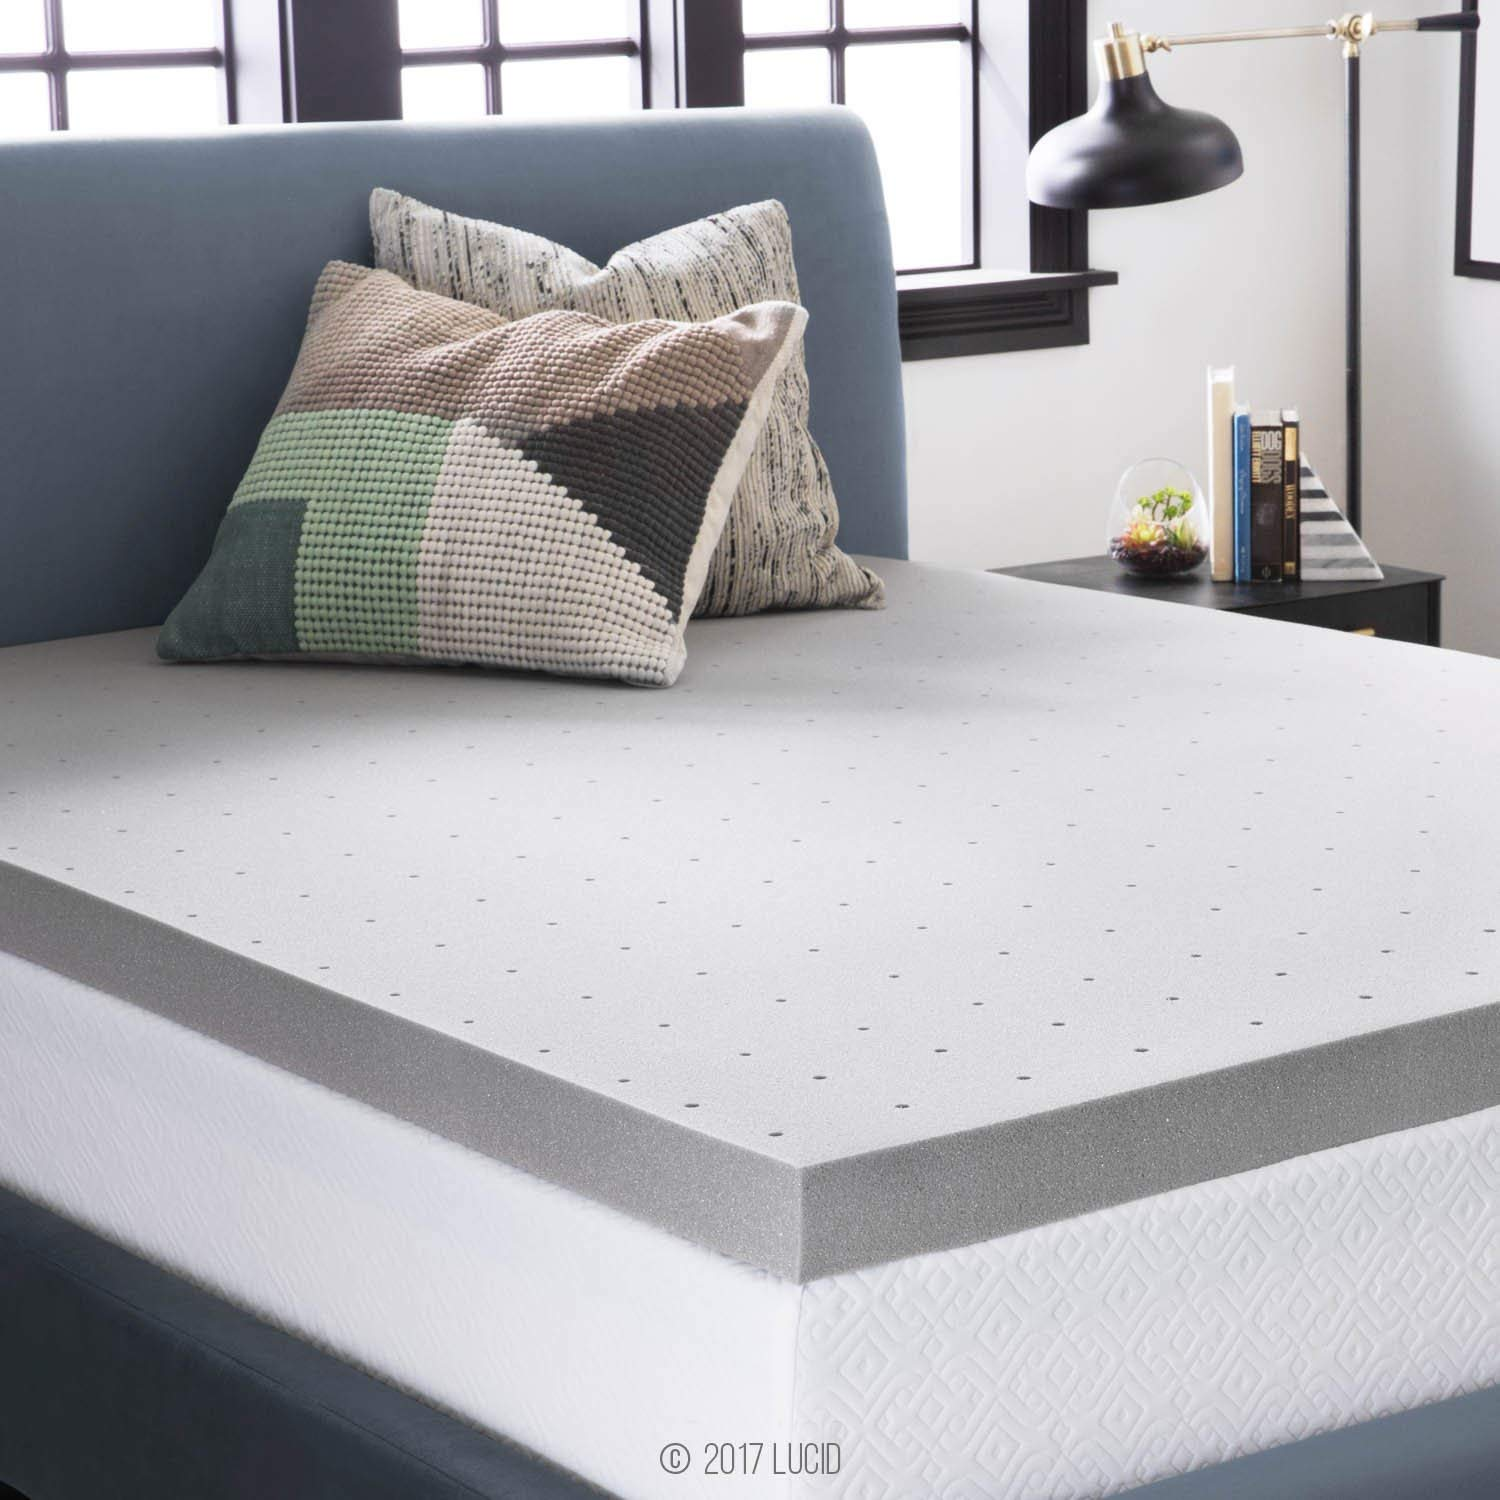 LUCID Best Mattress Topper for Side Sleepers review by www.dailysleep.org